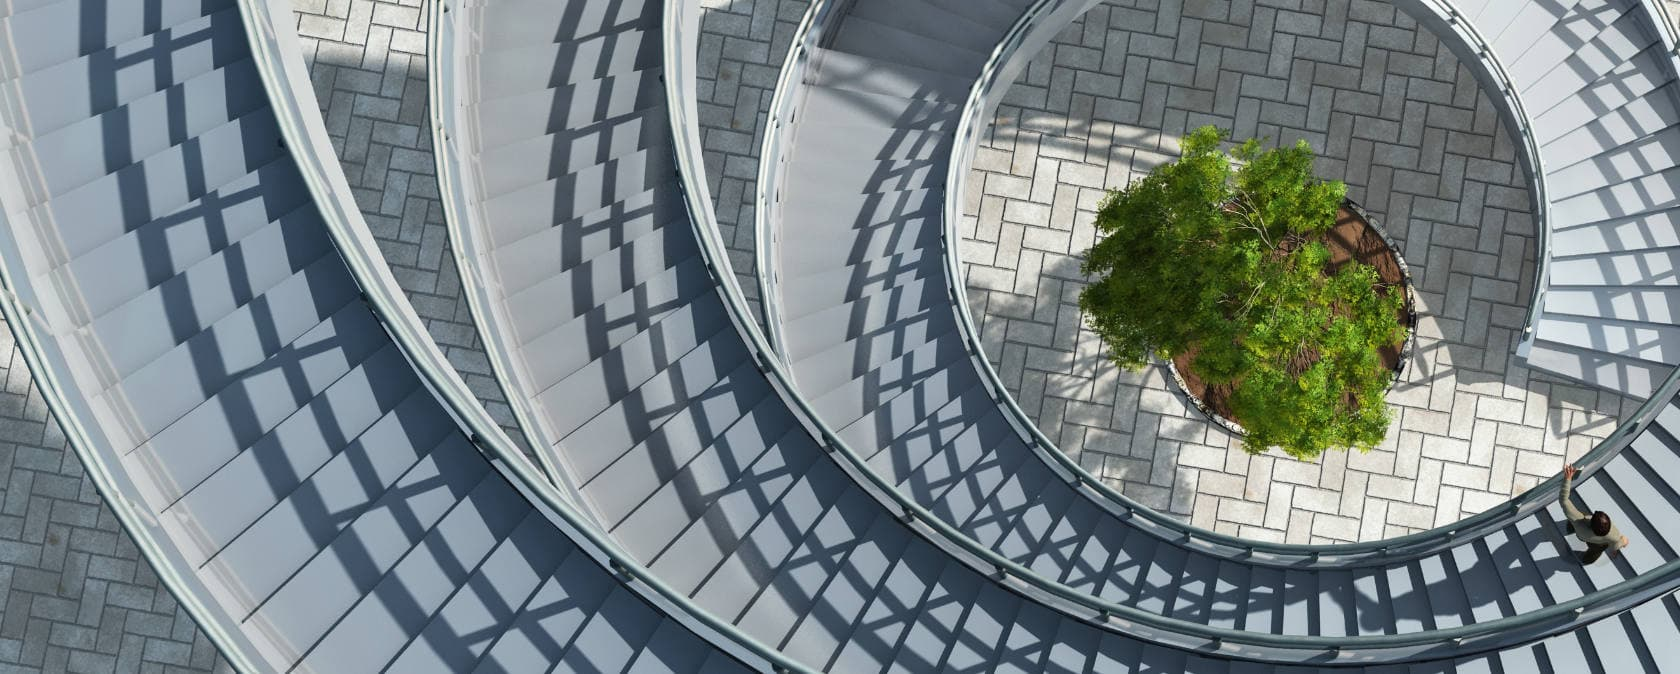 Bird's eye view of an outdoor spiral staircase surrounding a potted tree